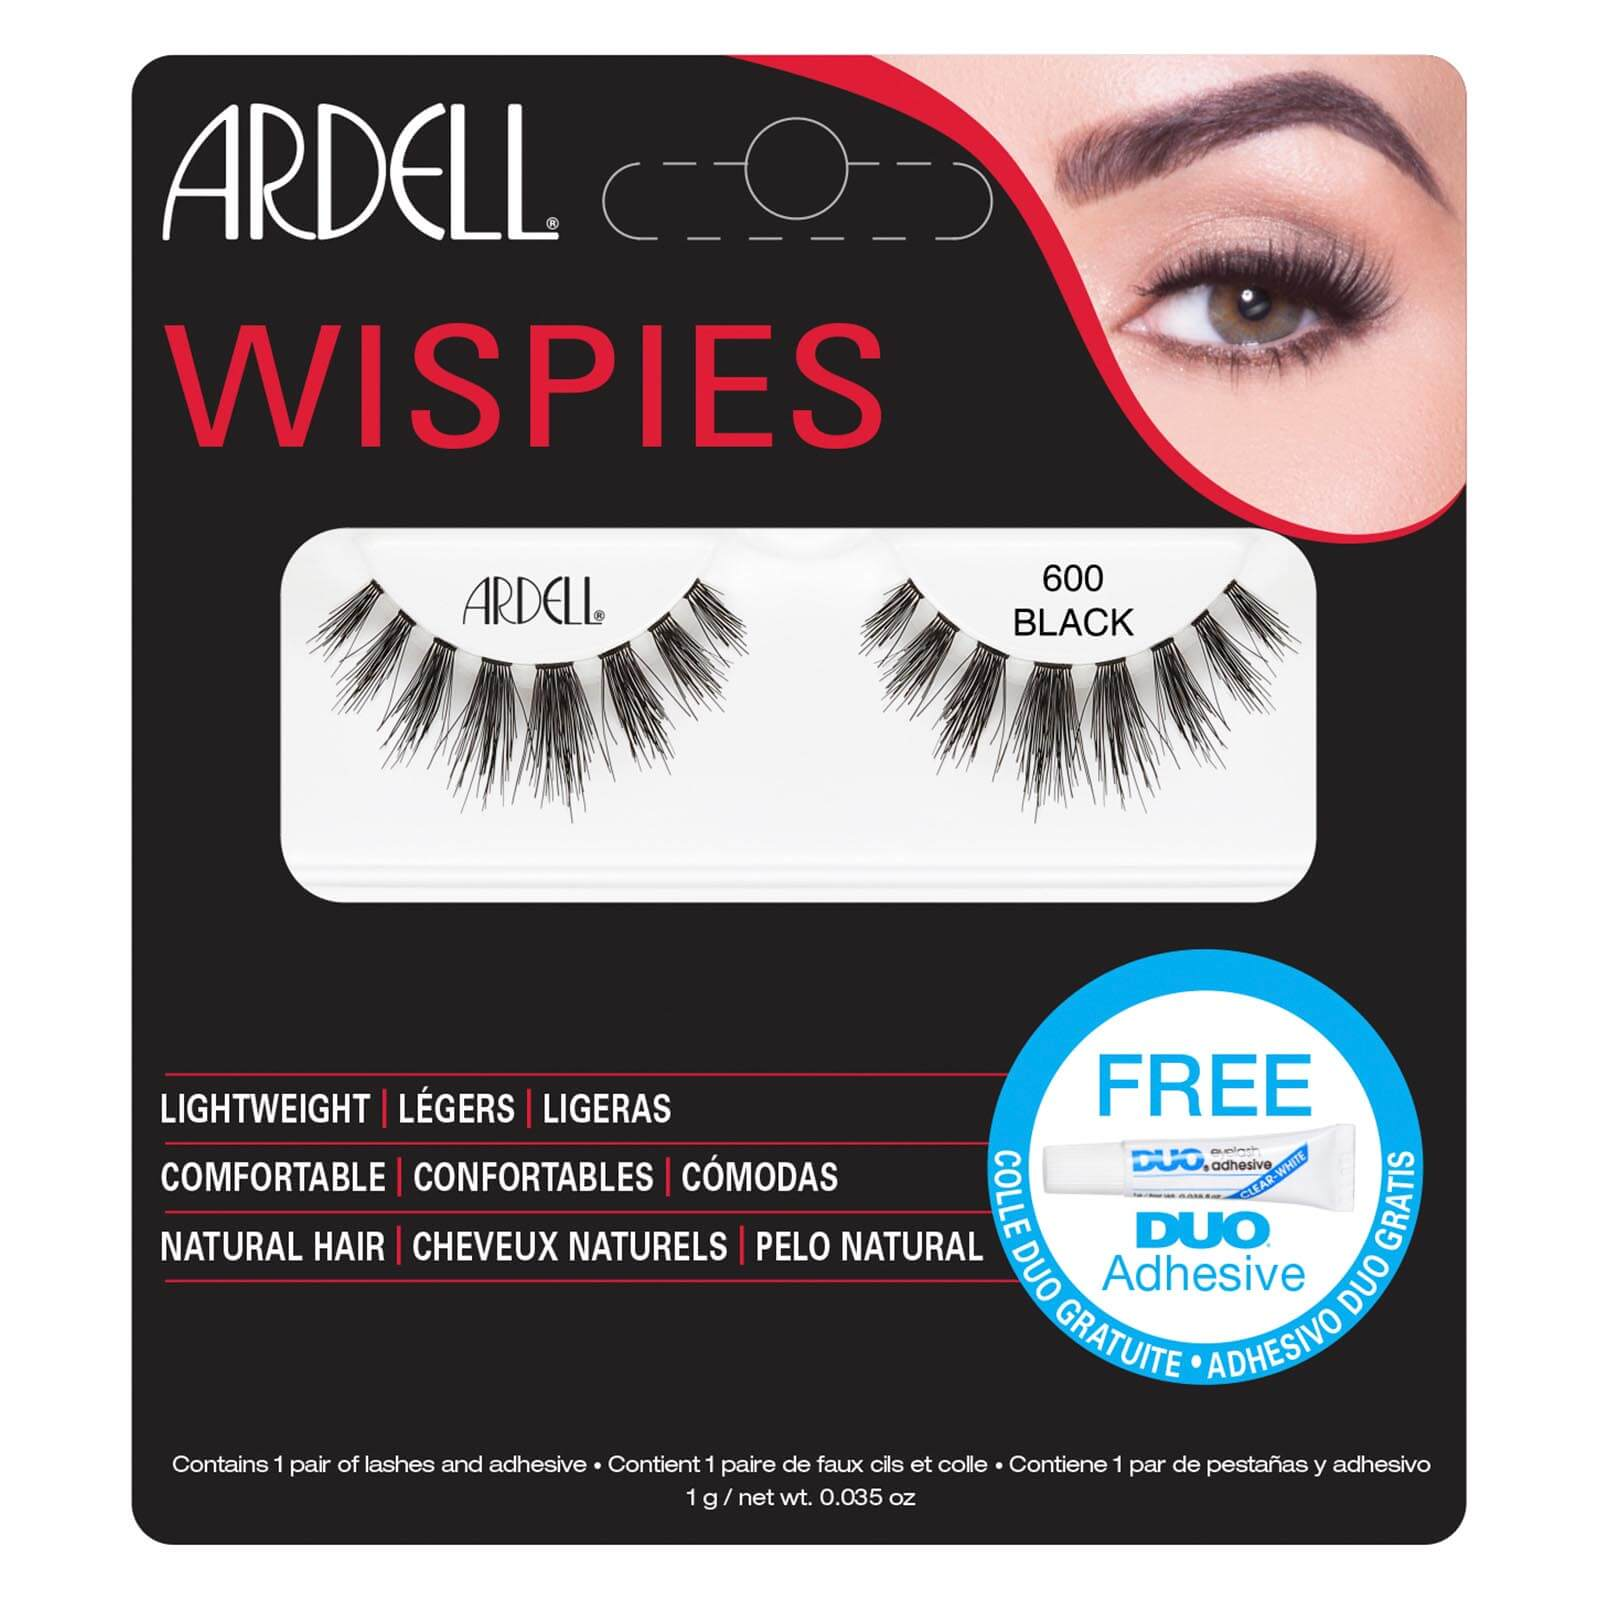 0a4a0795b7d Ardell Wispies Cluster False Eyelashes - 600 Black | Free Shipping |  Lookfantastic